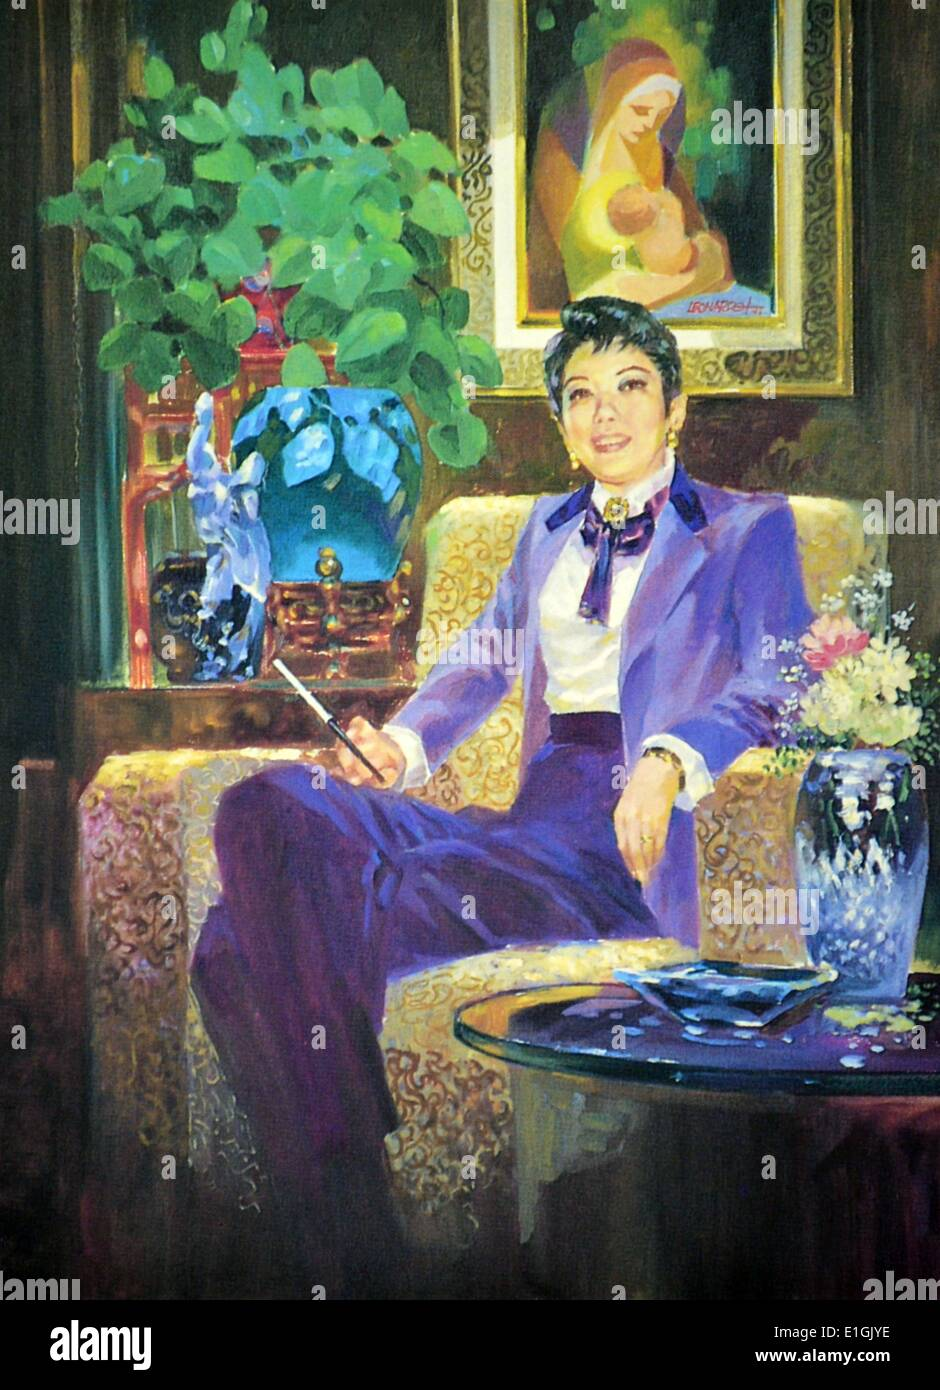 Leonardo Cruz, Portrait of Joy Dee, 1993. Oil on canvas. - Stock Image